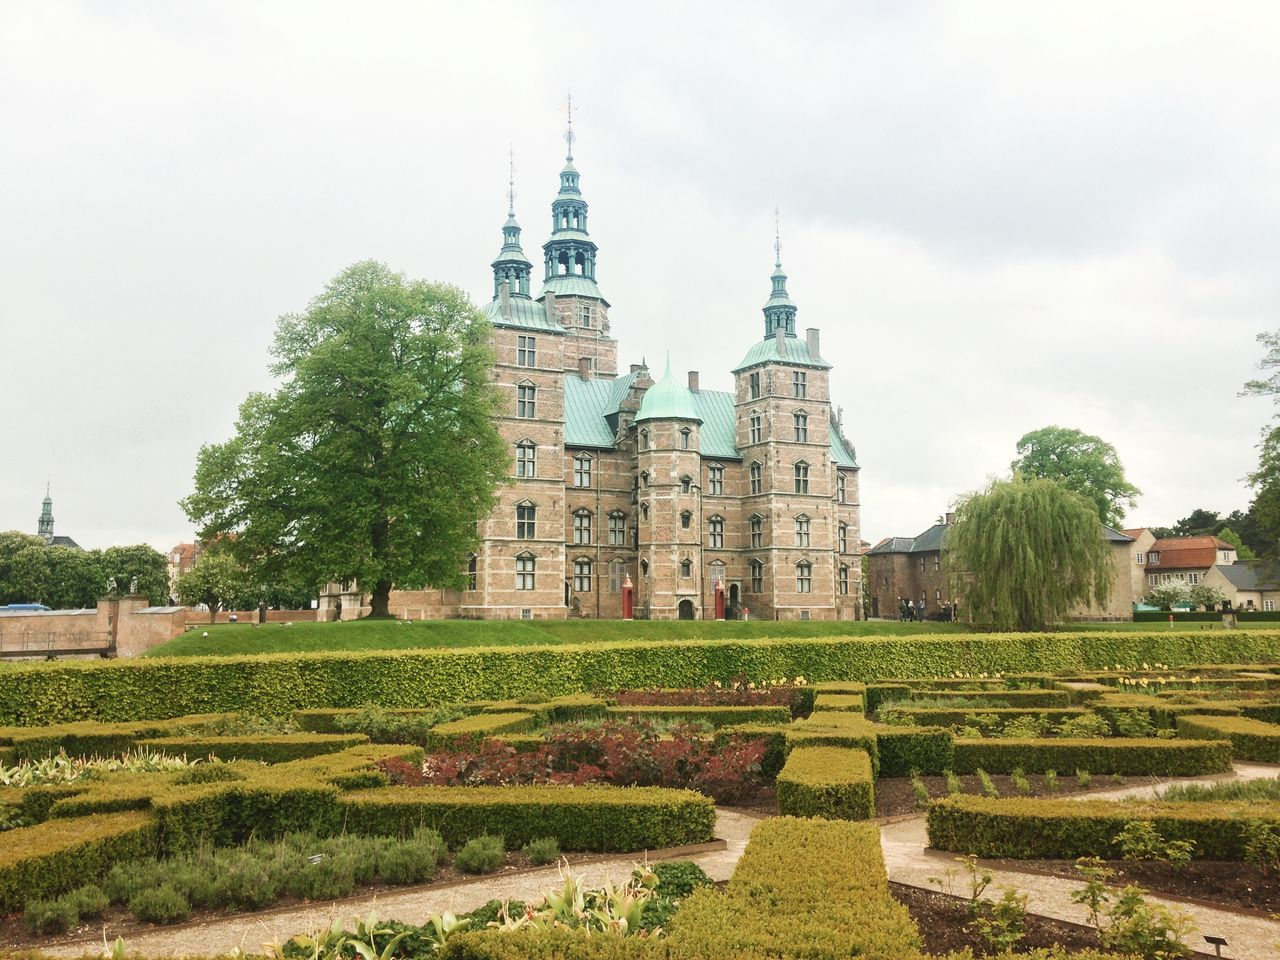 Rosenborg Castle in Copenhagen, Denmark Architecture Built Structure Cloud Cloud - Sky Copenhagen Danish Day Denmark Exterior Façade Grass Green Color Growth Lawn Nature No People Outdoors Plant Rosenborg Castle Rosenborg Slot Rosenborgcastlepark Sky Tourism Travel Destinations Tree